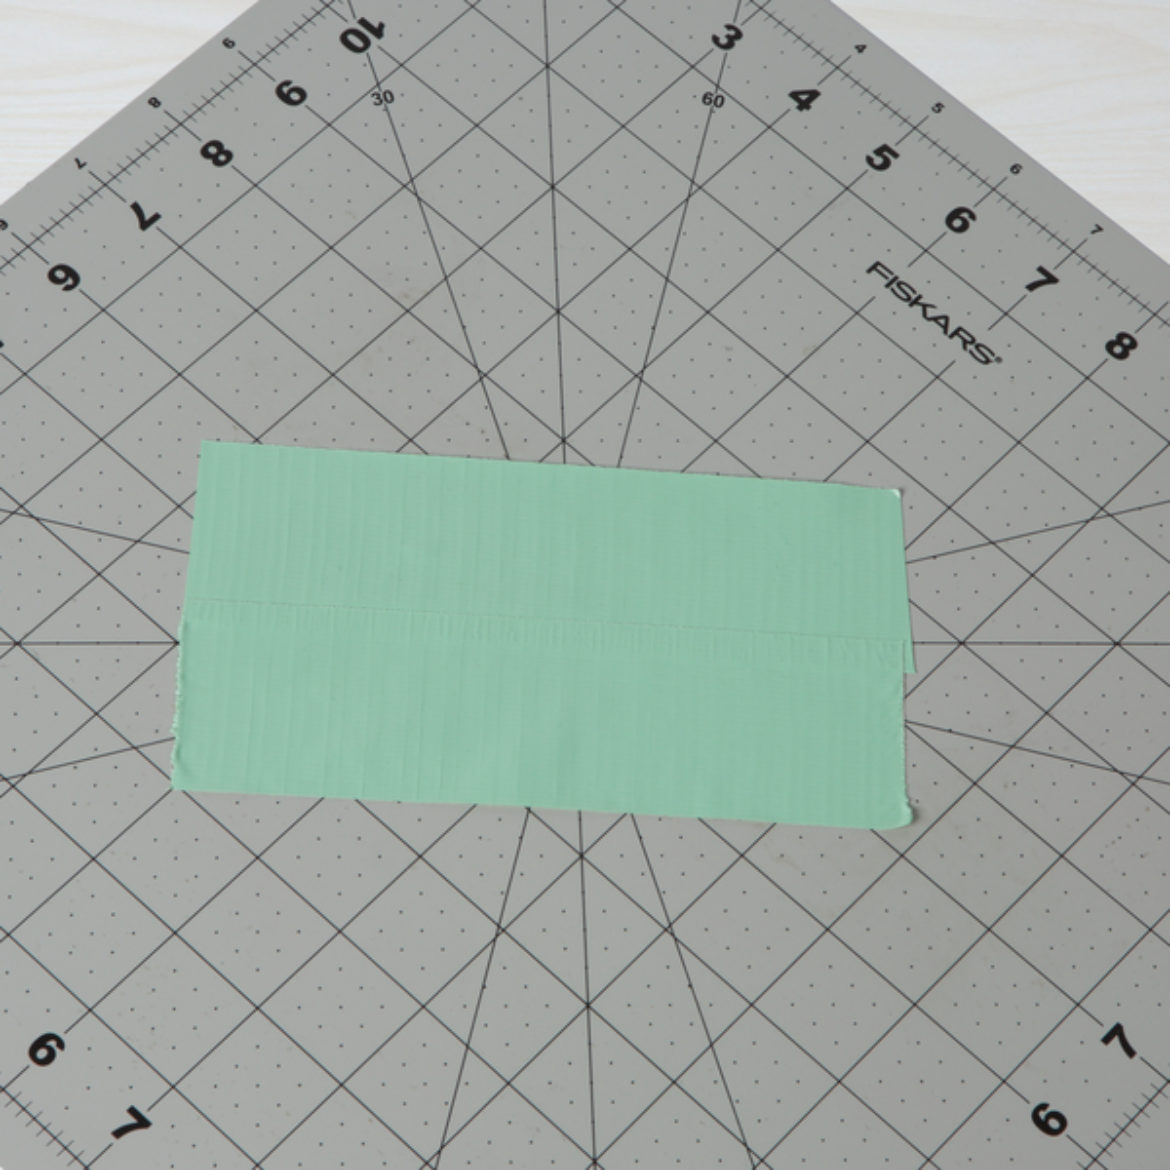 2 strips of Duck Tape overlapped to create a sticky fabric